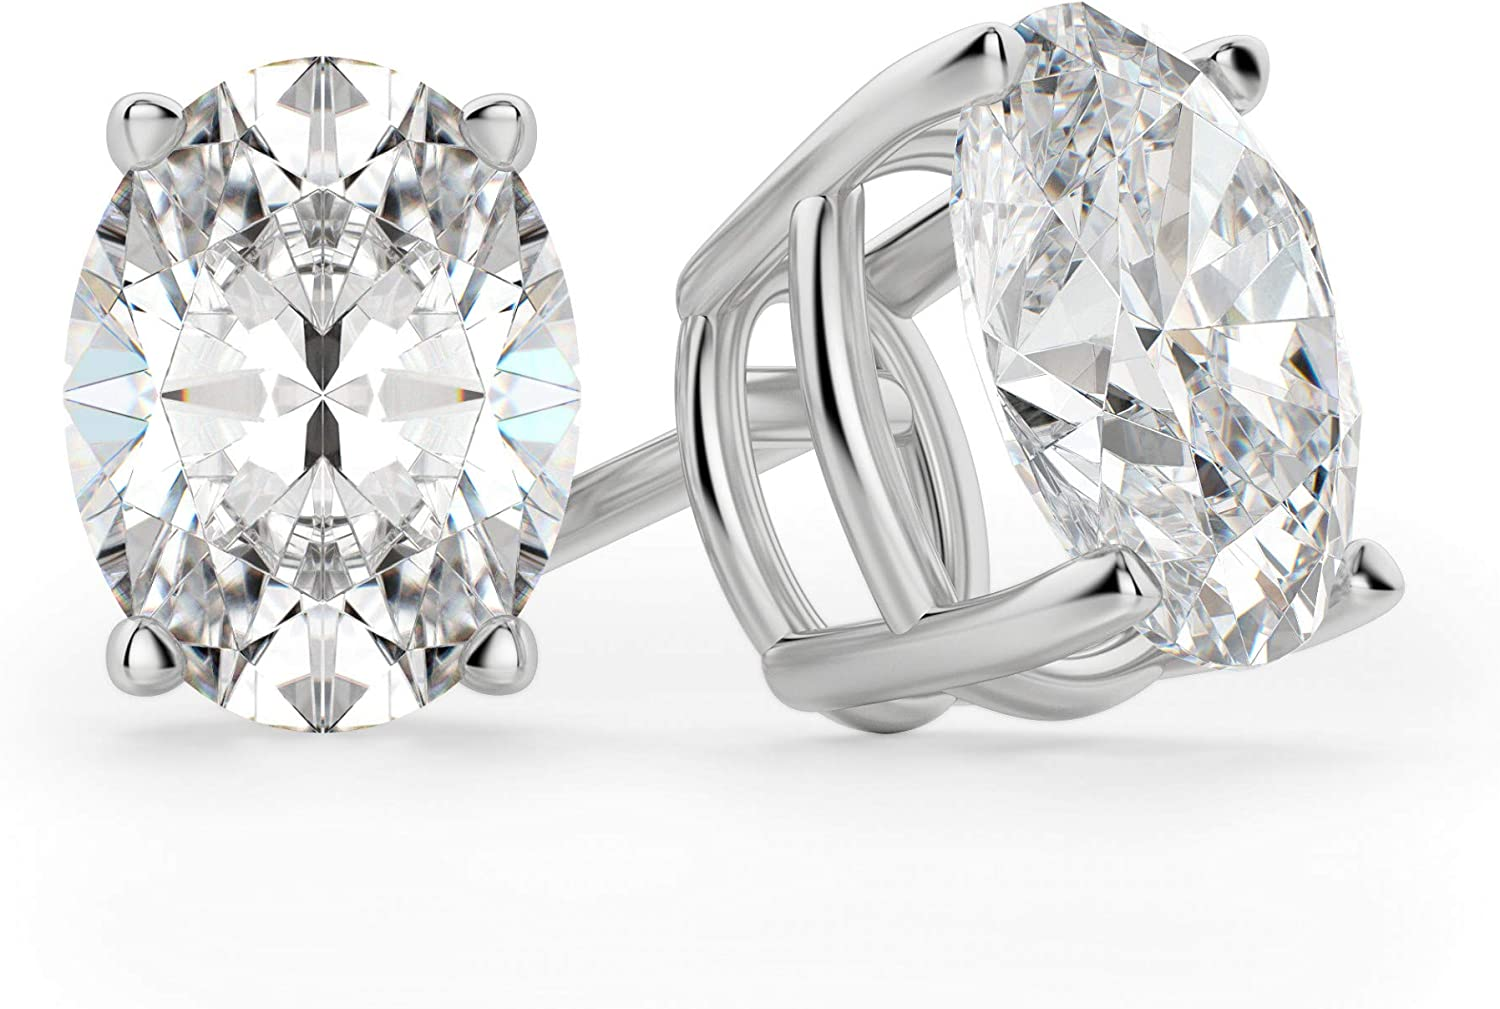 Bhumi Gems Oval Cut Mail order cheap VVS1 S Diamond Max 72% OFF Earrings Moissanite Colorless